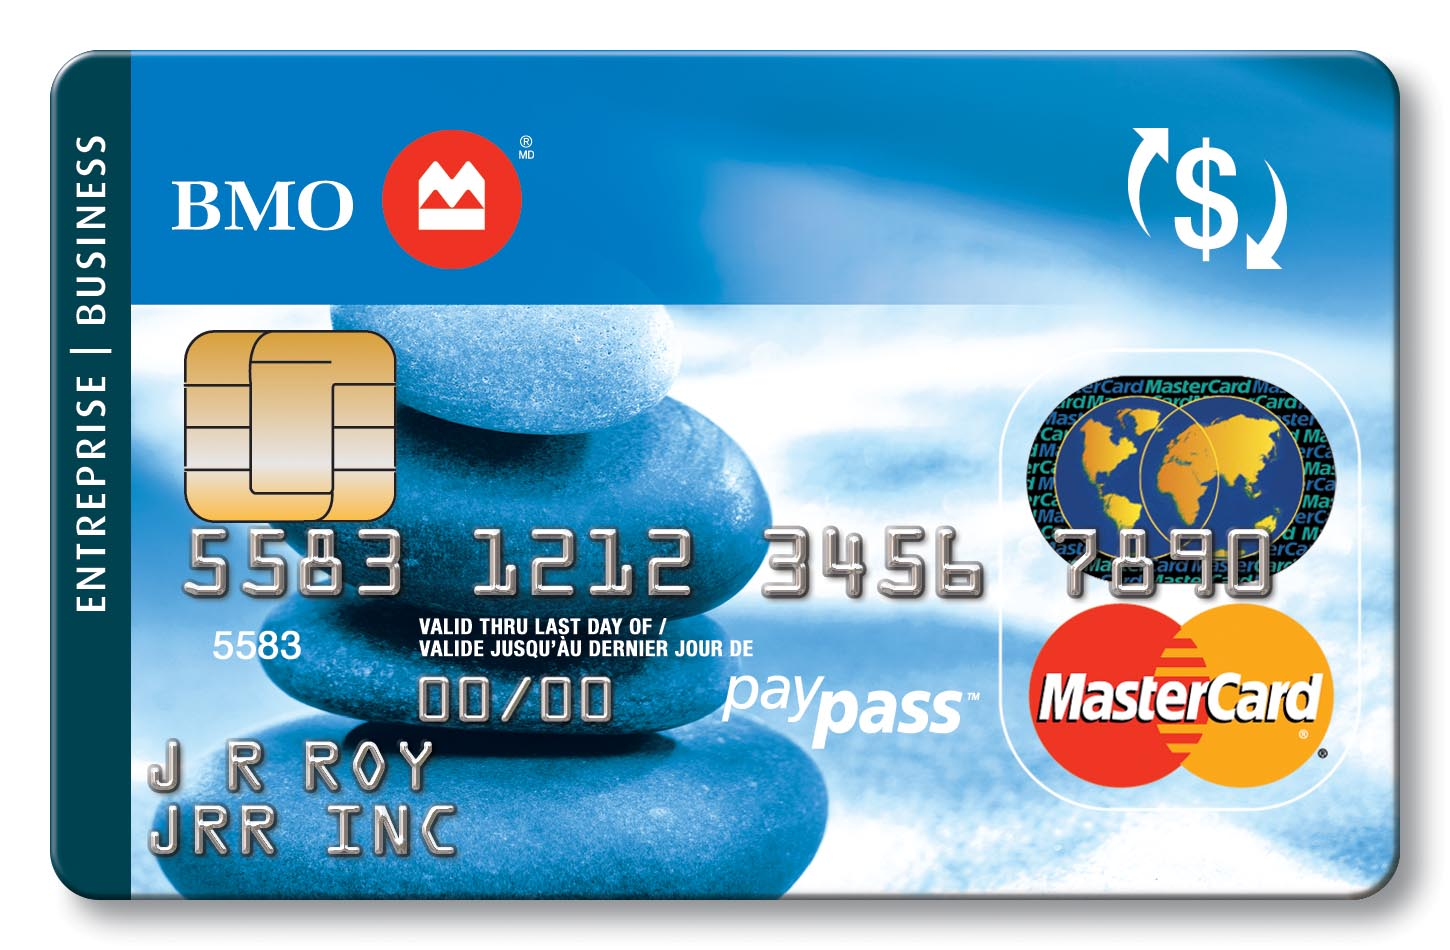 Business Credit Cards | BMO Bank of Montreal